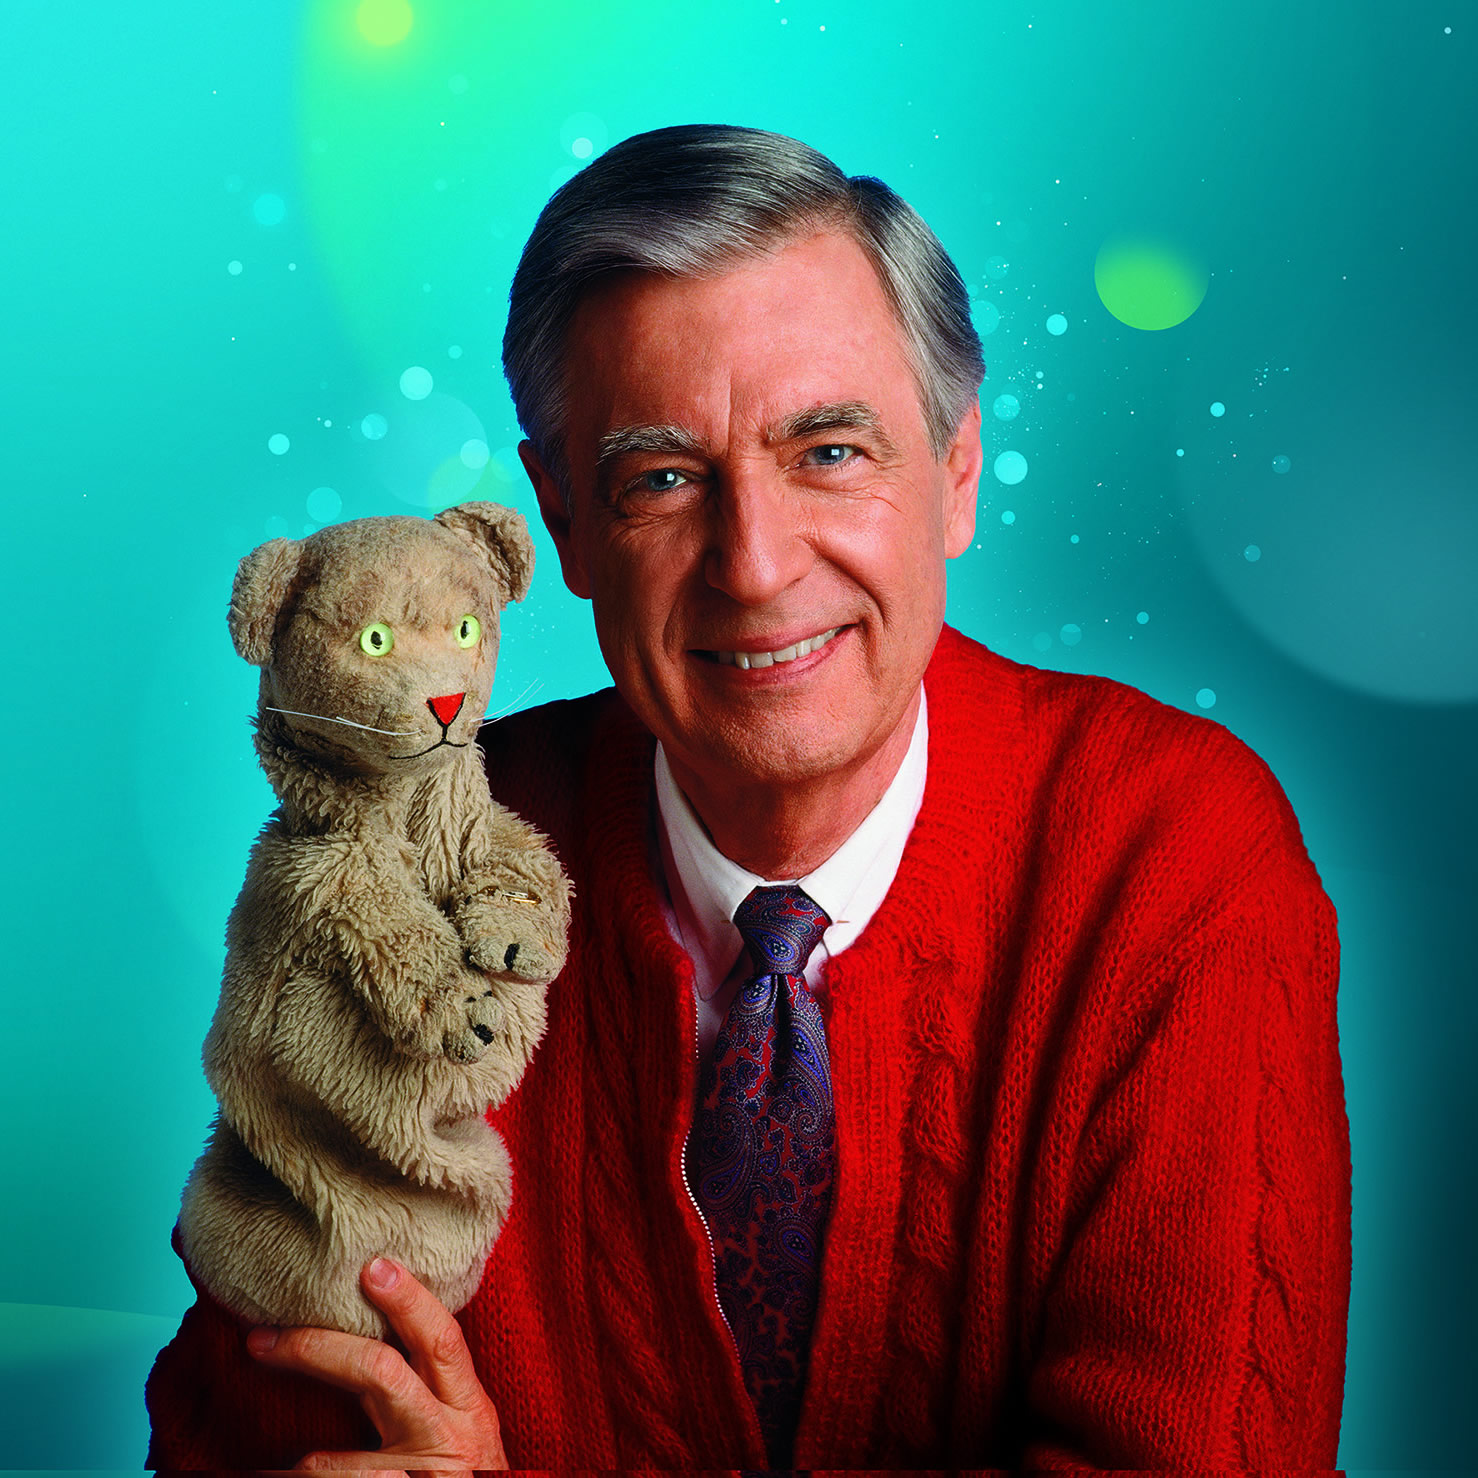 Mr. Rogers posing with Daniel Tiger